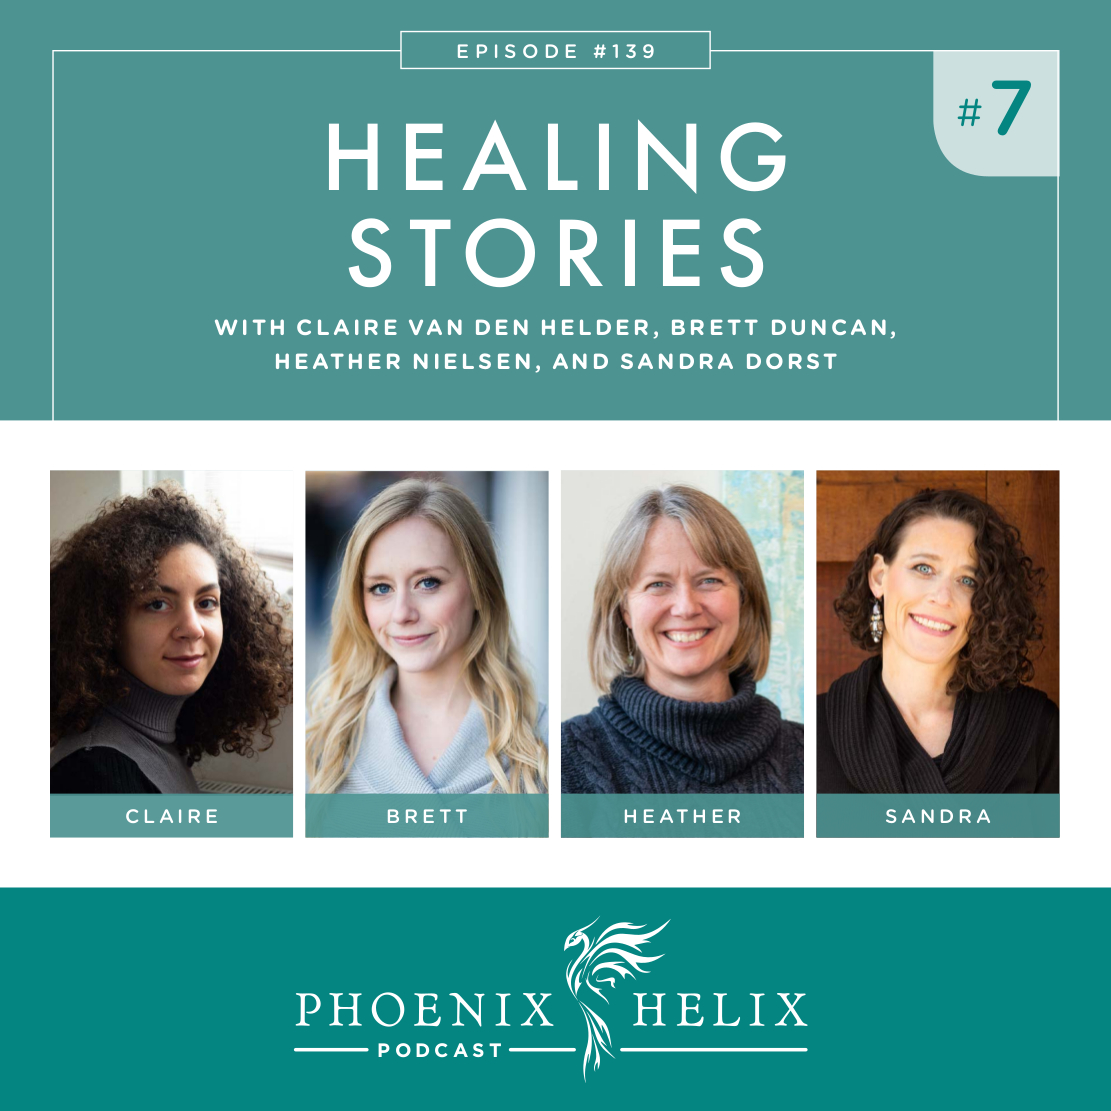 Autoimmune Healing Stories #7 | Phoenix Helix Podcast